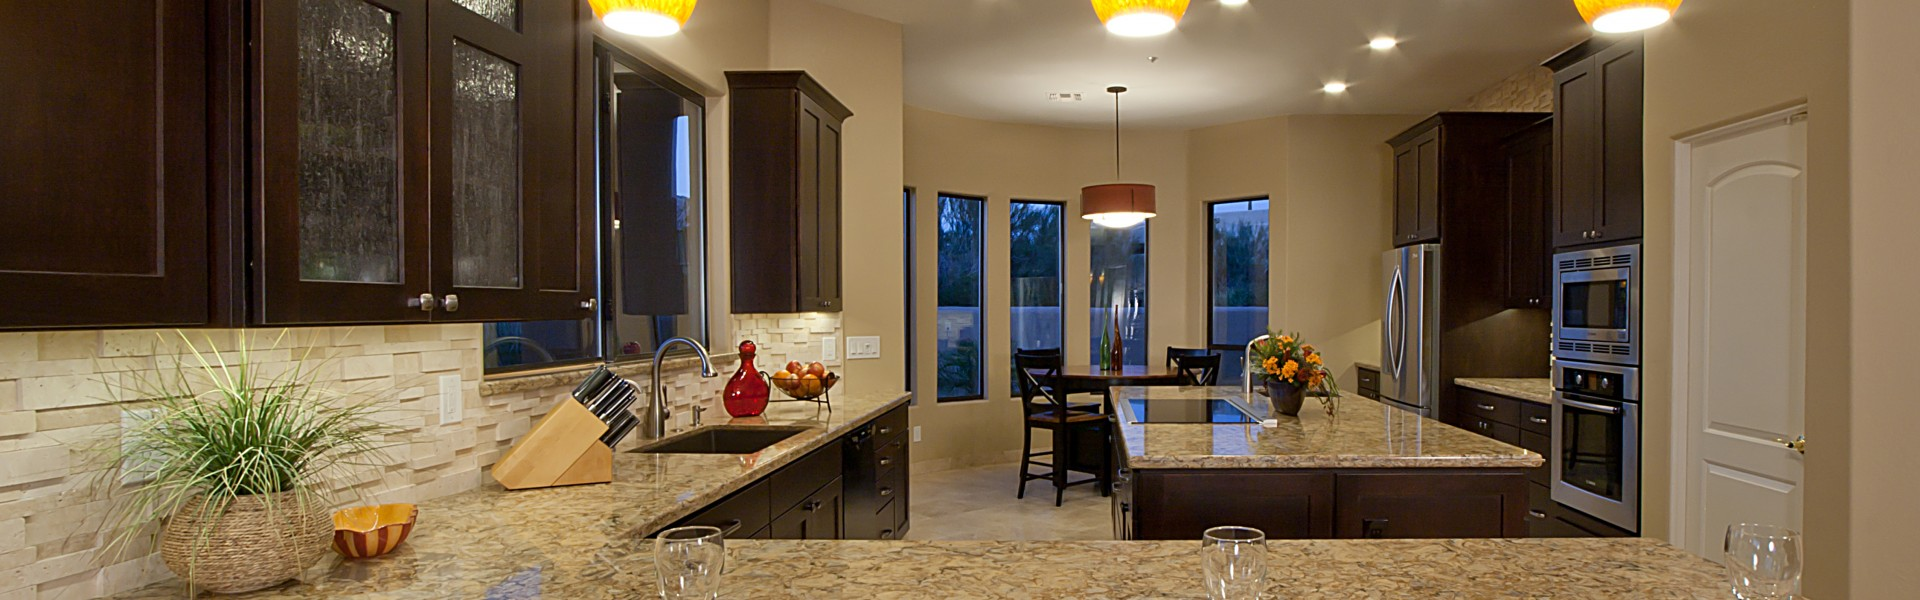 Interior design kitchen remodel bath remodeling custom home interiors scottsdale - Interior design new home ideas ...